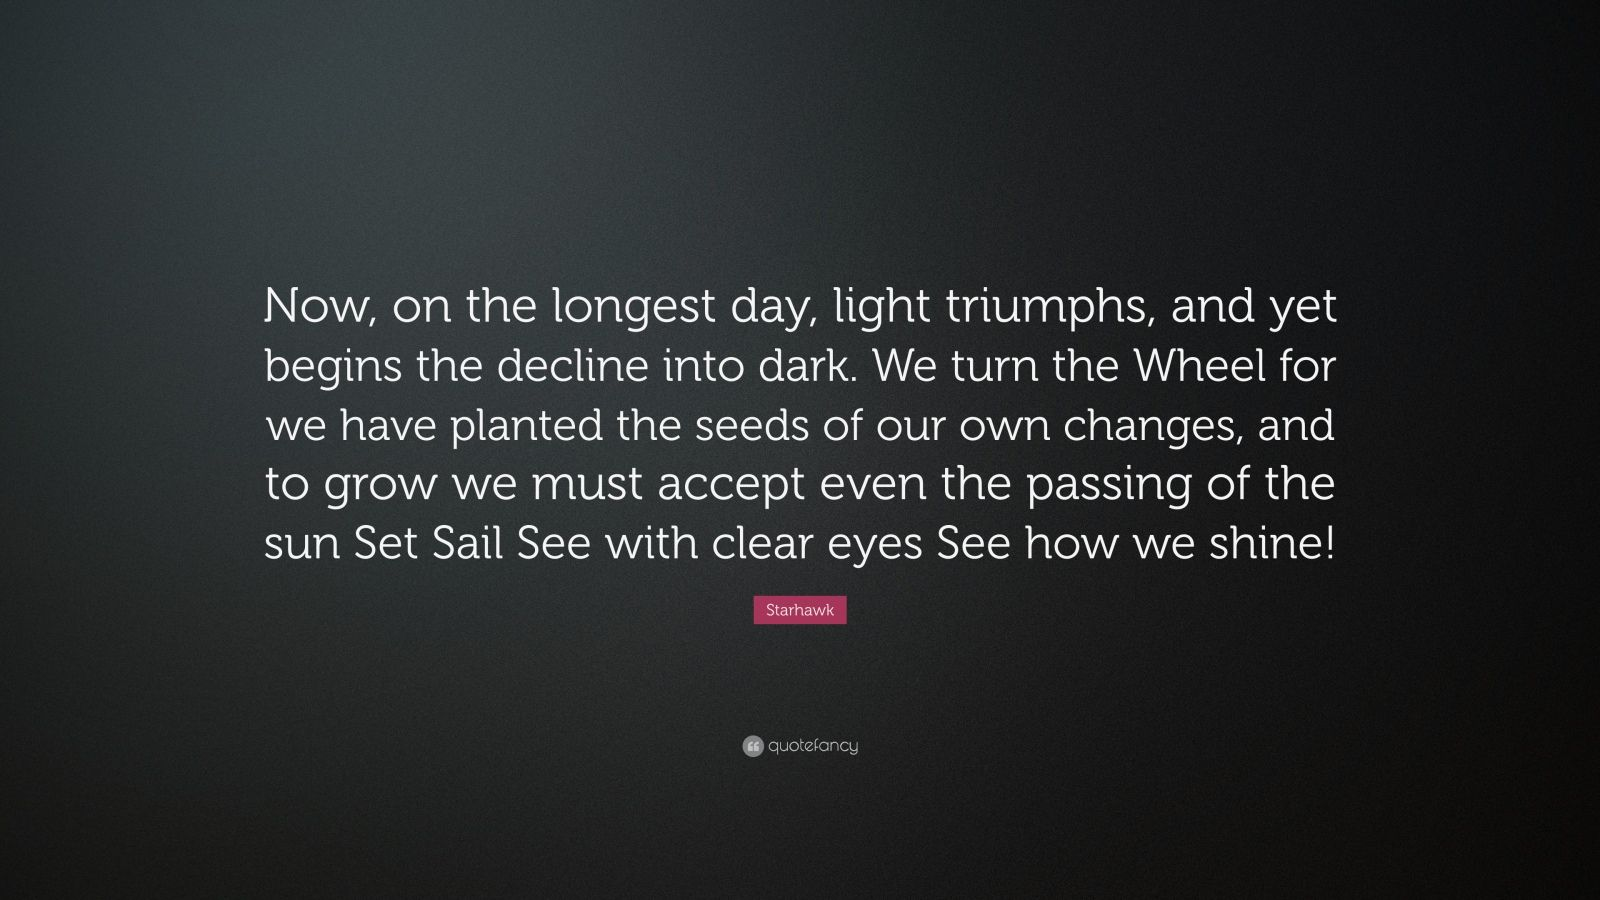 "Starhawk Quote: ""Now, on the longest day, light triumphs, and yet begins the decline into dark. We turn the Wheel for we have planted the seeds of our own changes, and to grow we must accept even the passing of the sun Set Sail See with clear eyes See how we shine!"""